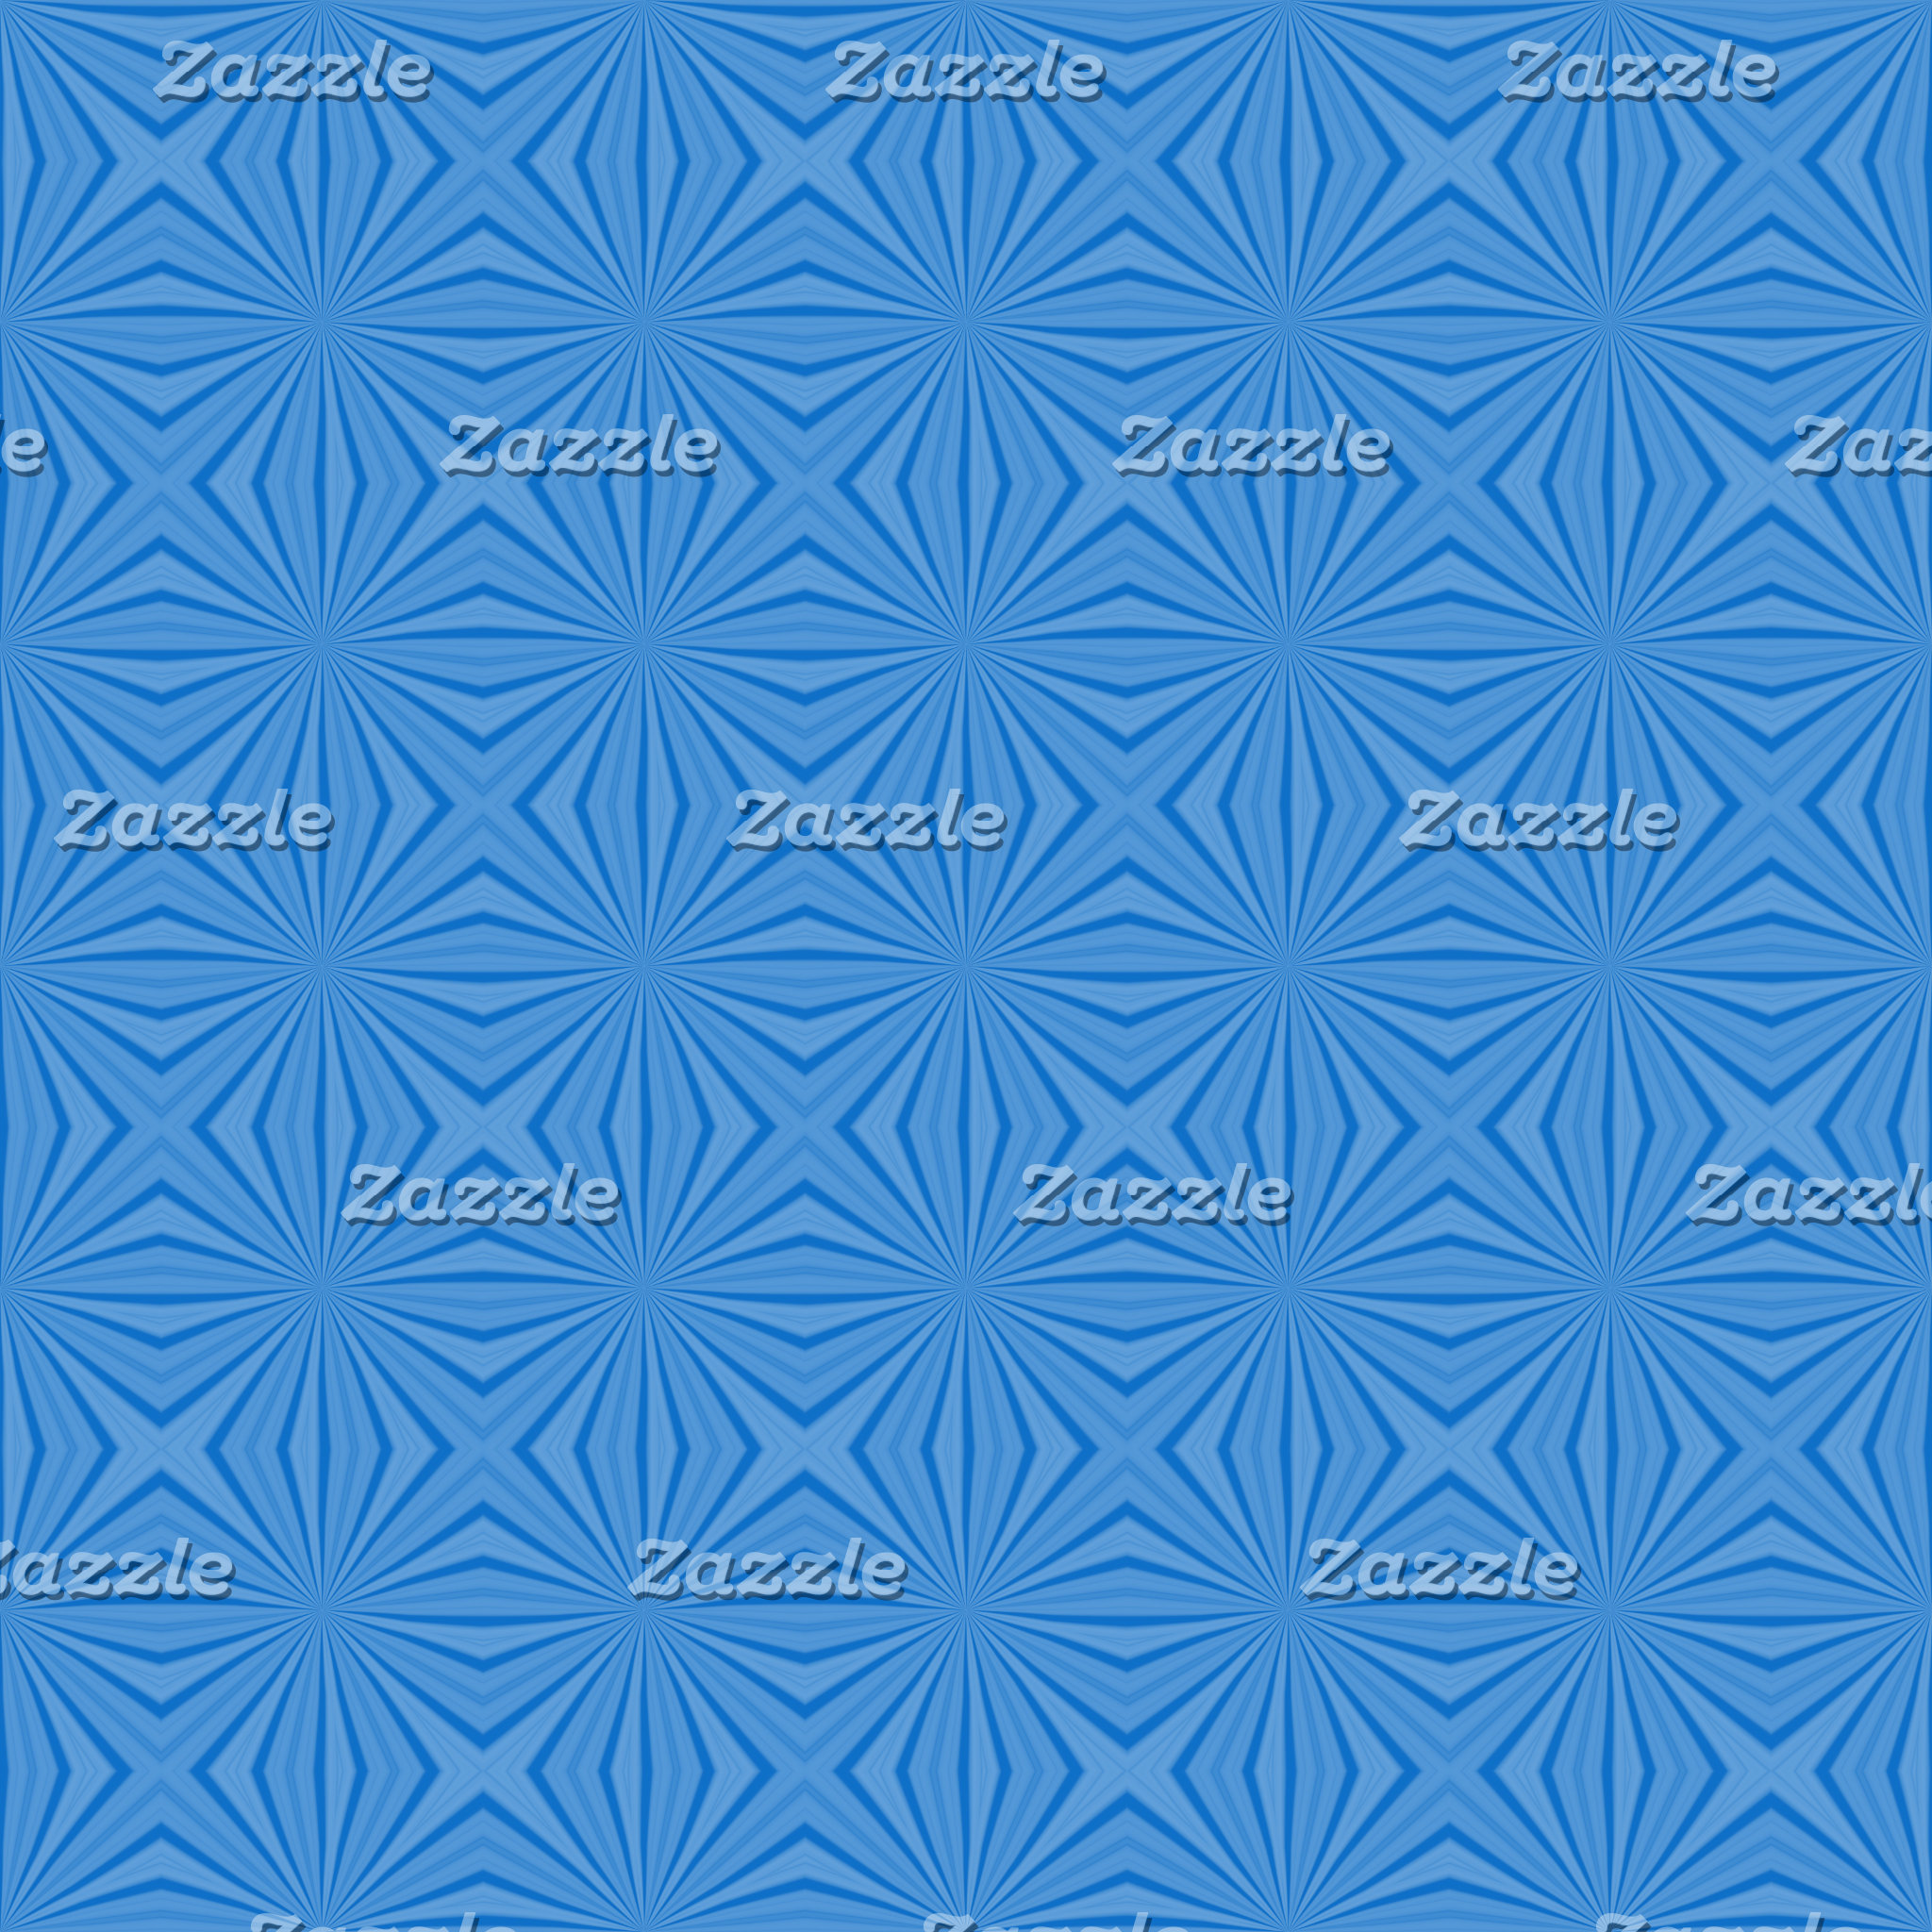 Hannakah Blue Squiggly Squares